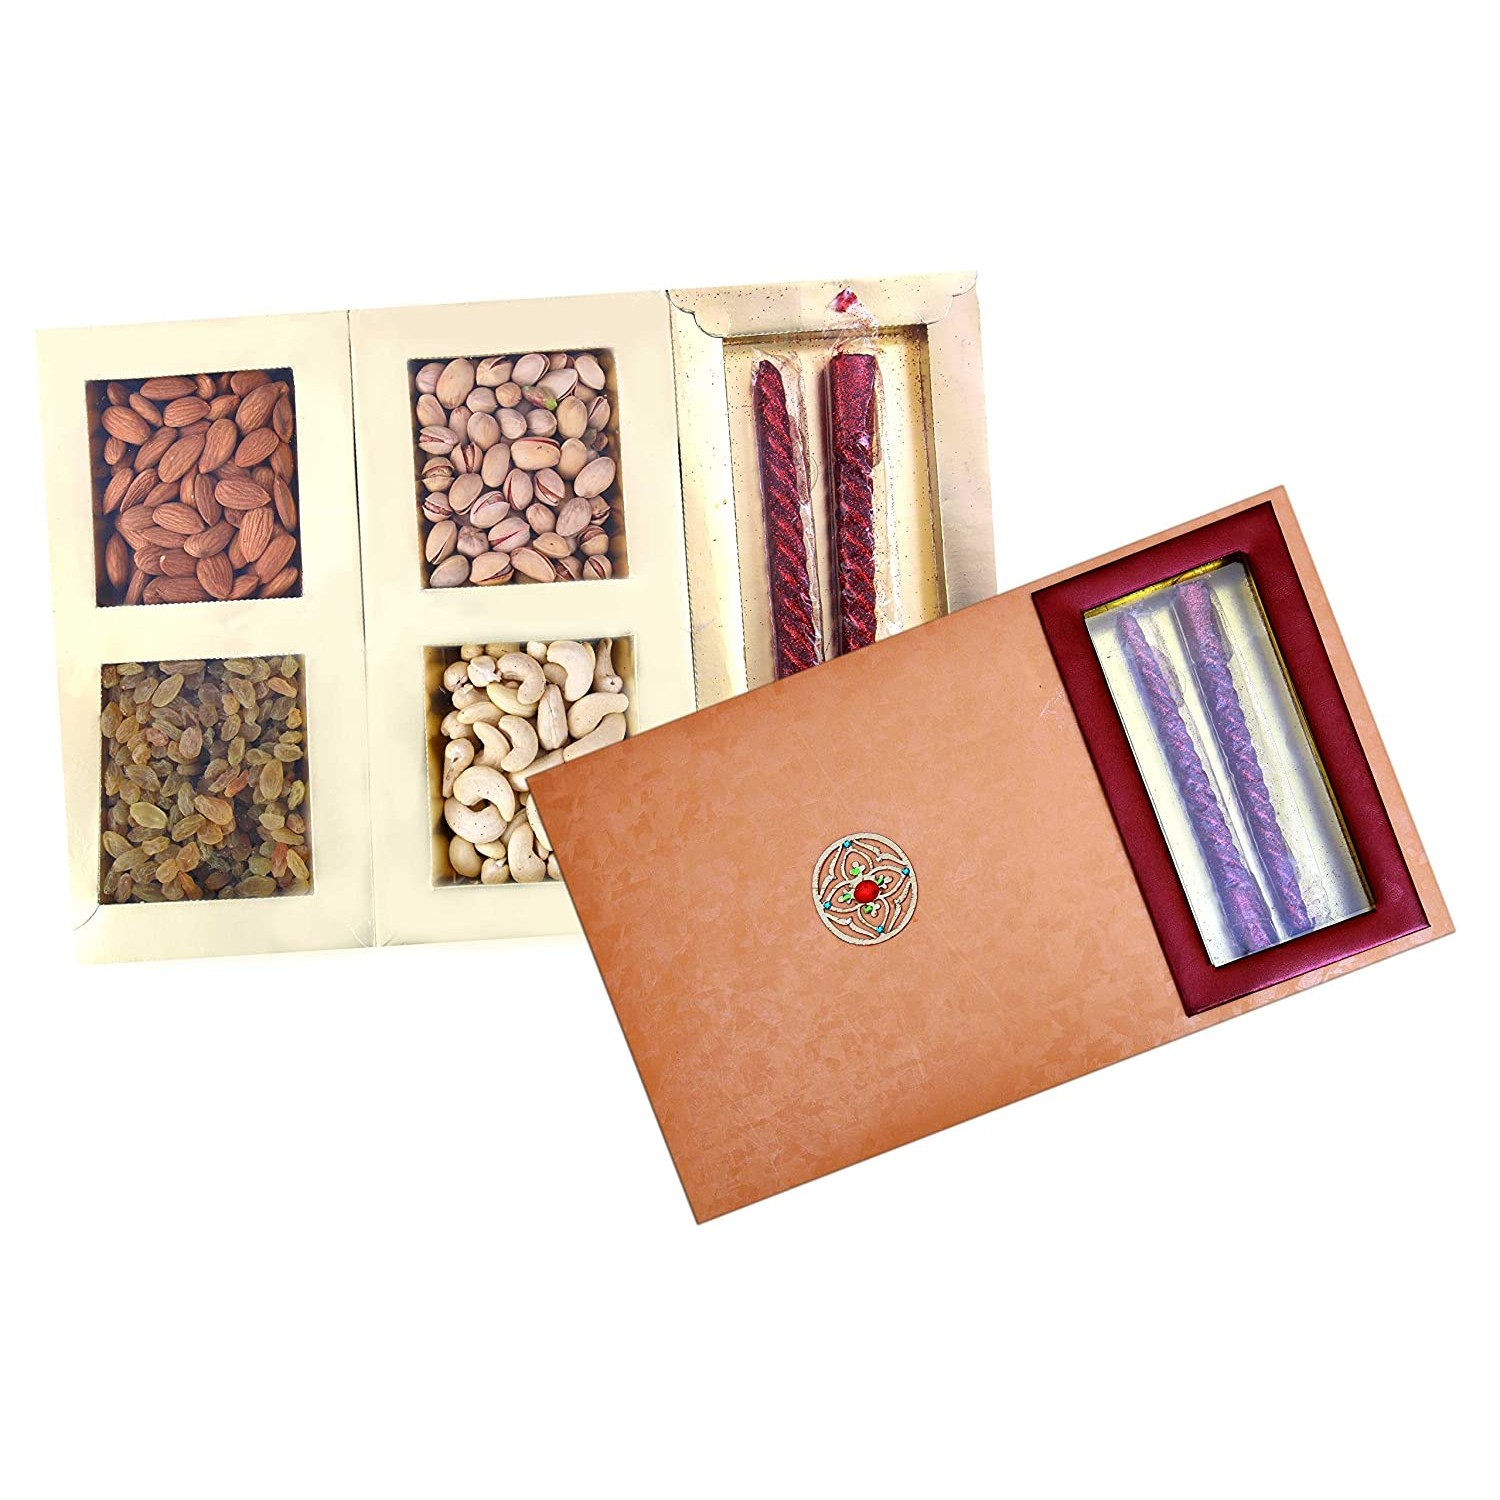 Dry Fruits Gift Box (With 2 Candles) 450 Grams (Badham 125g, Cashewnut 100g, Grapes 125g, Pistha 100g)